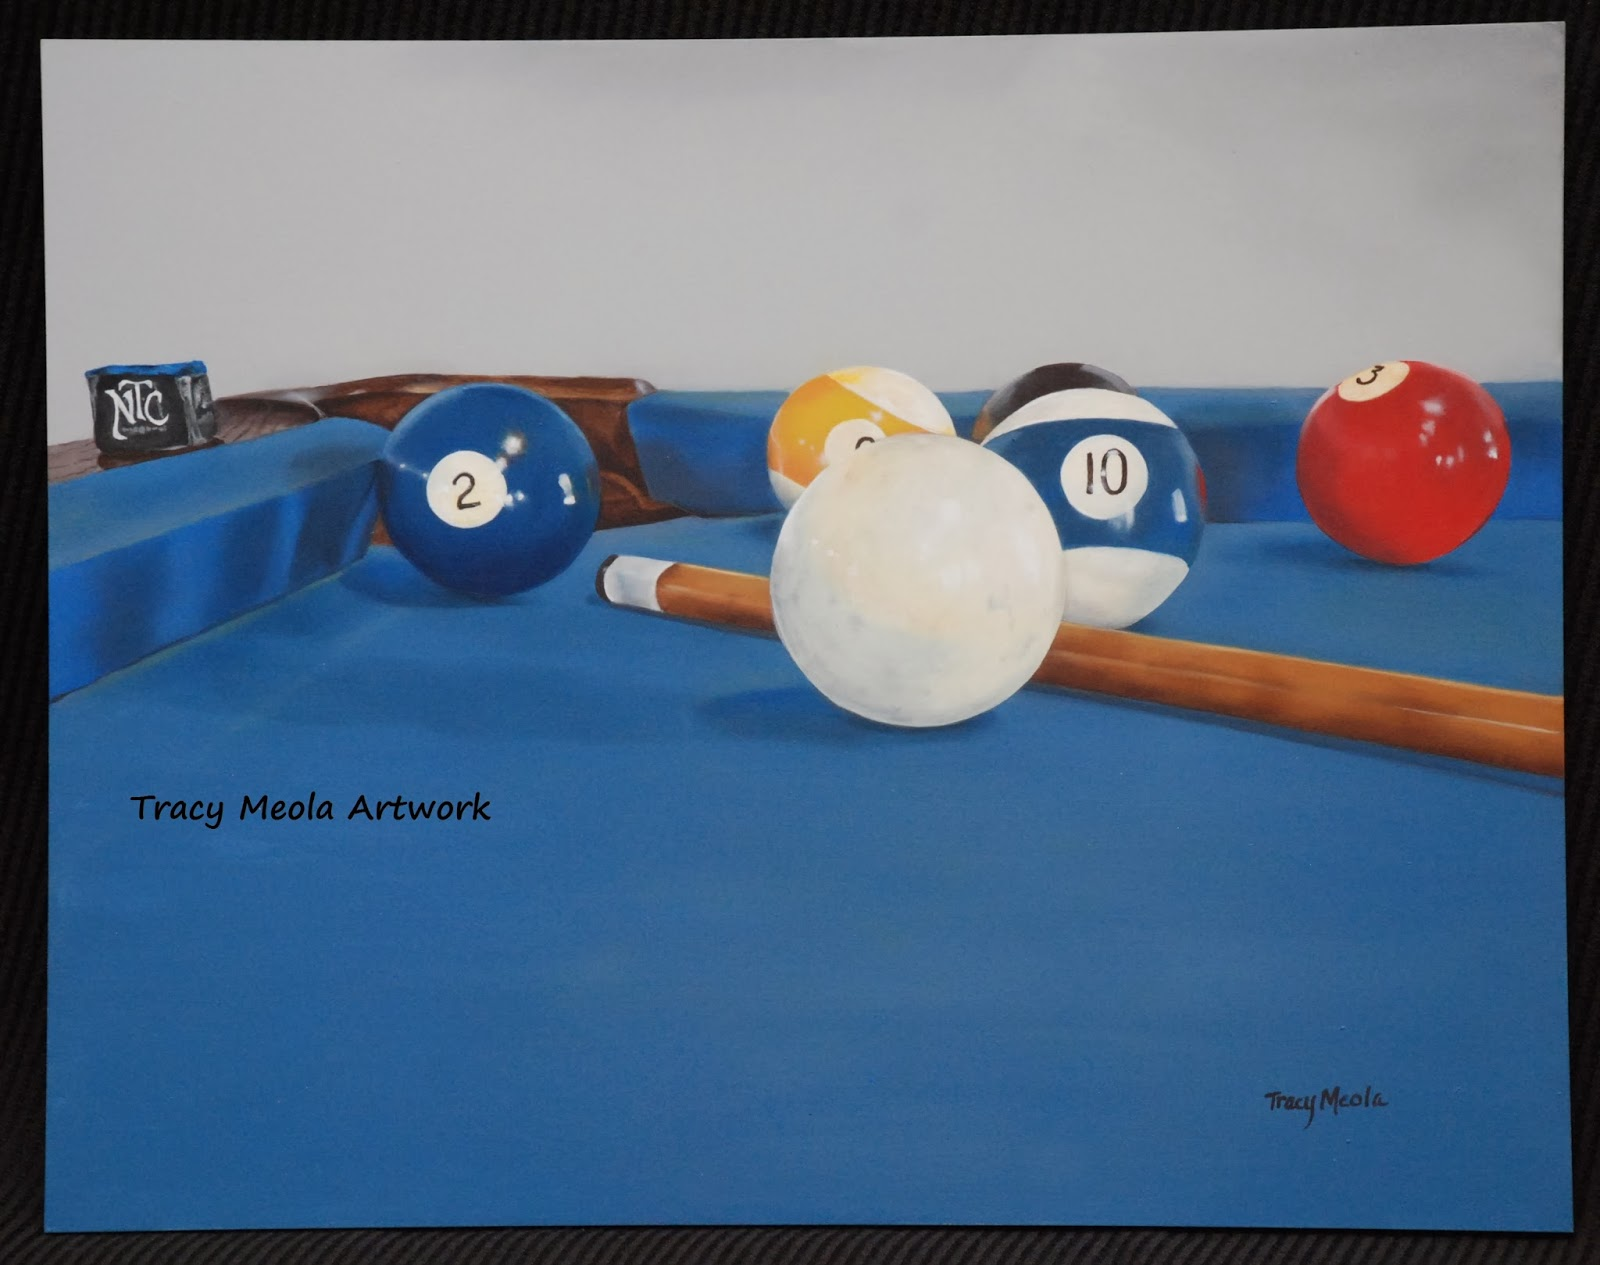 Billiards Painting Stopped In The Middle Of The Game - Pool table painting